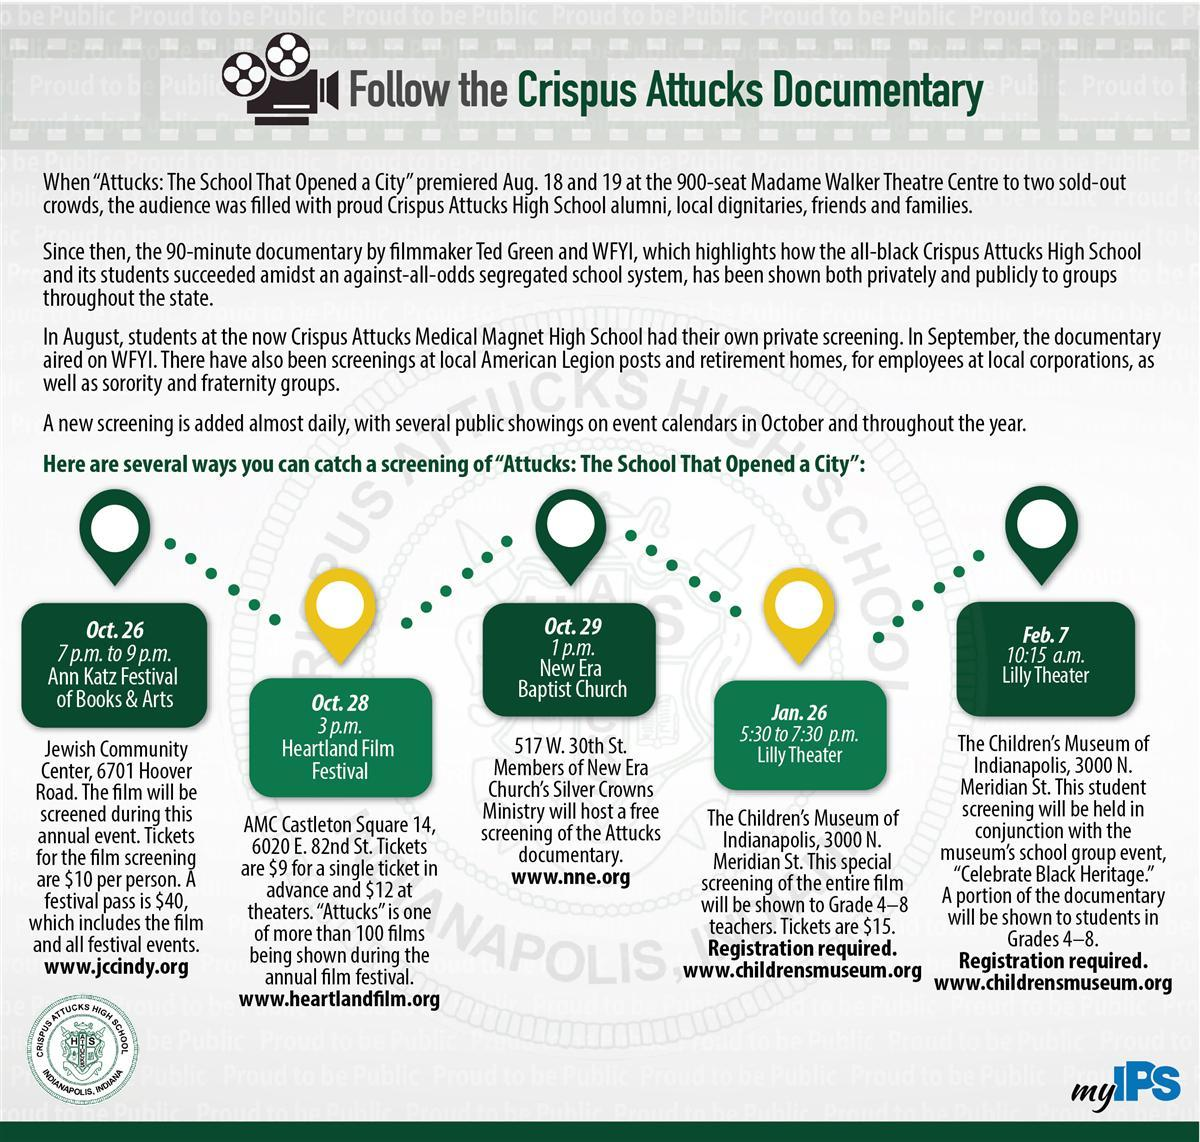 Attucks Documentary Infographic